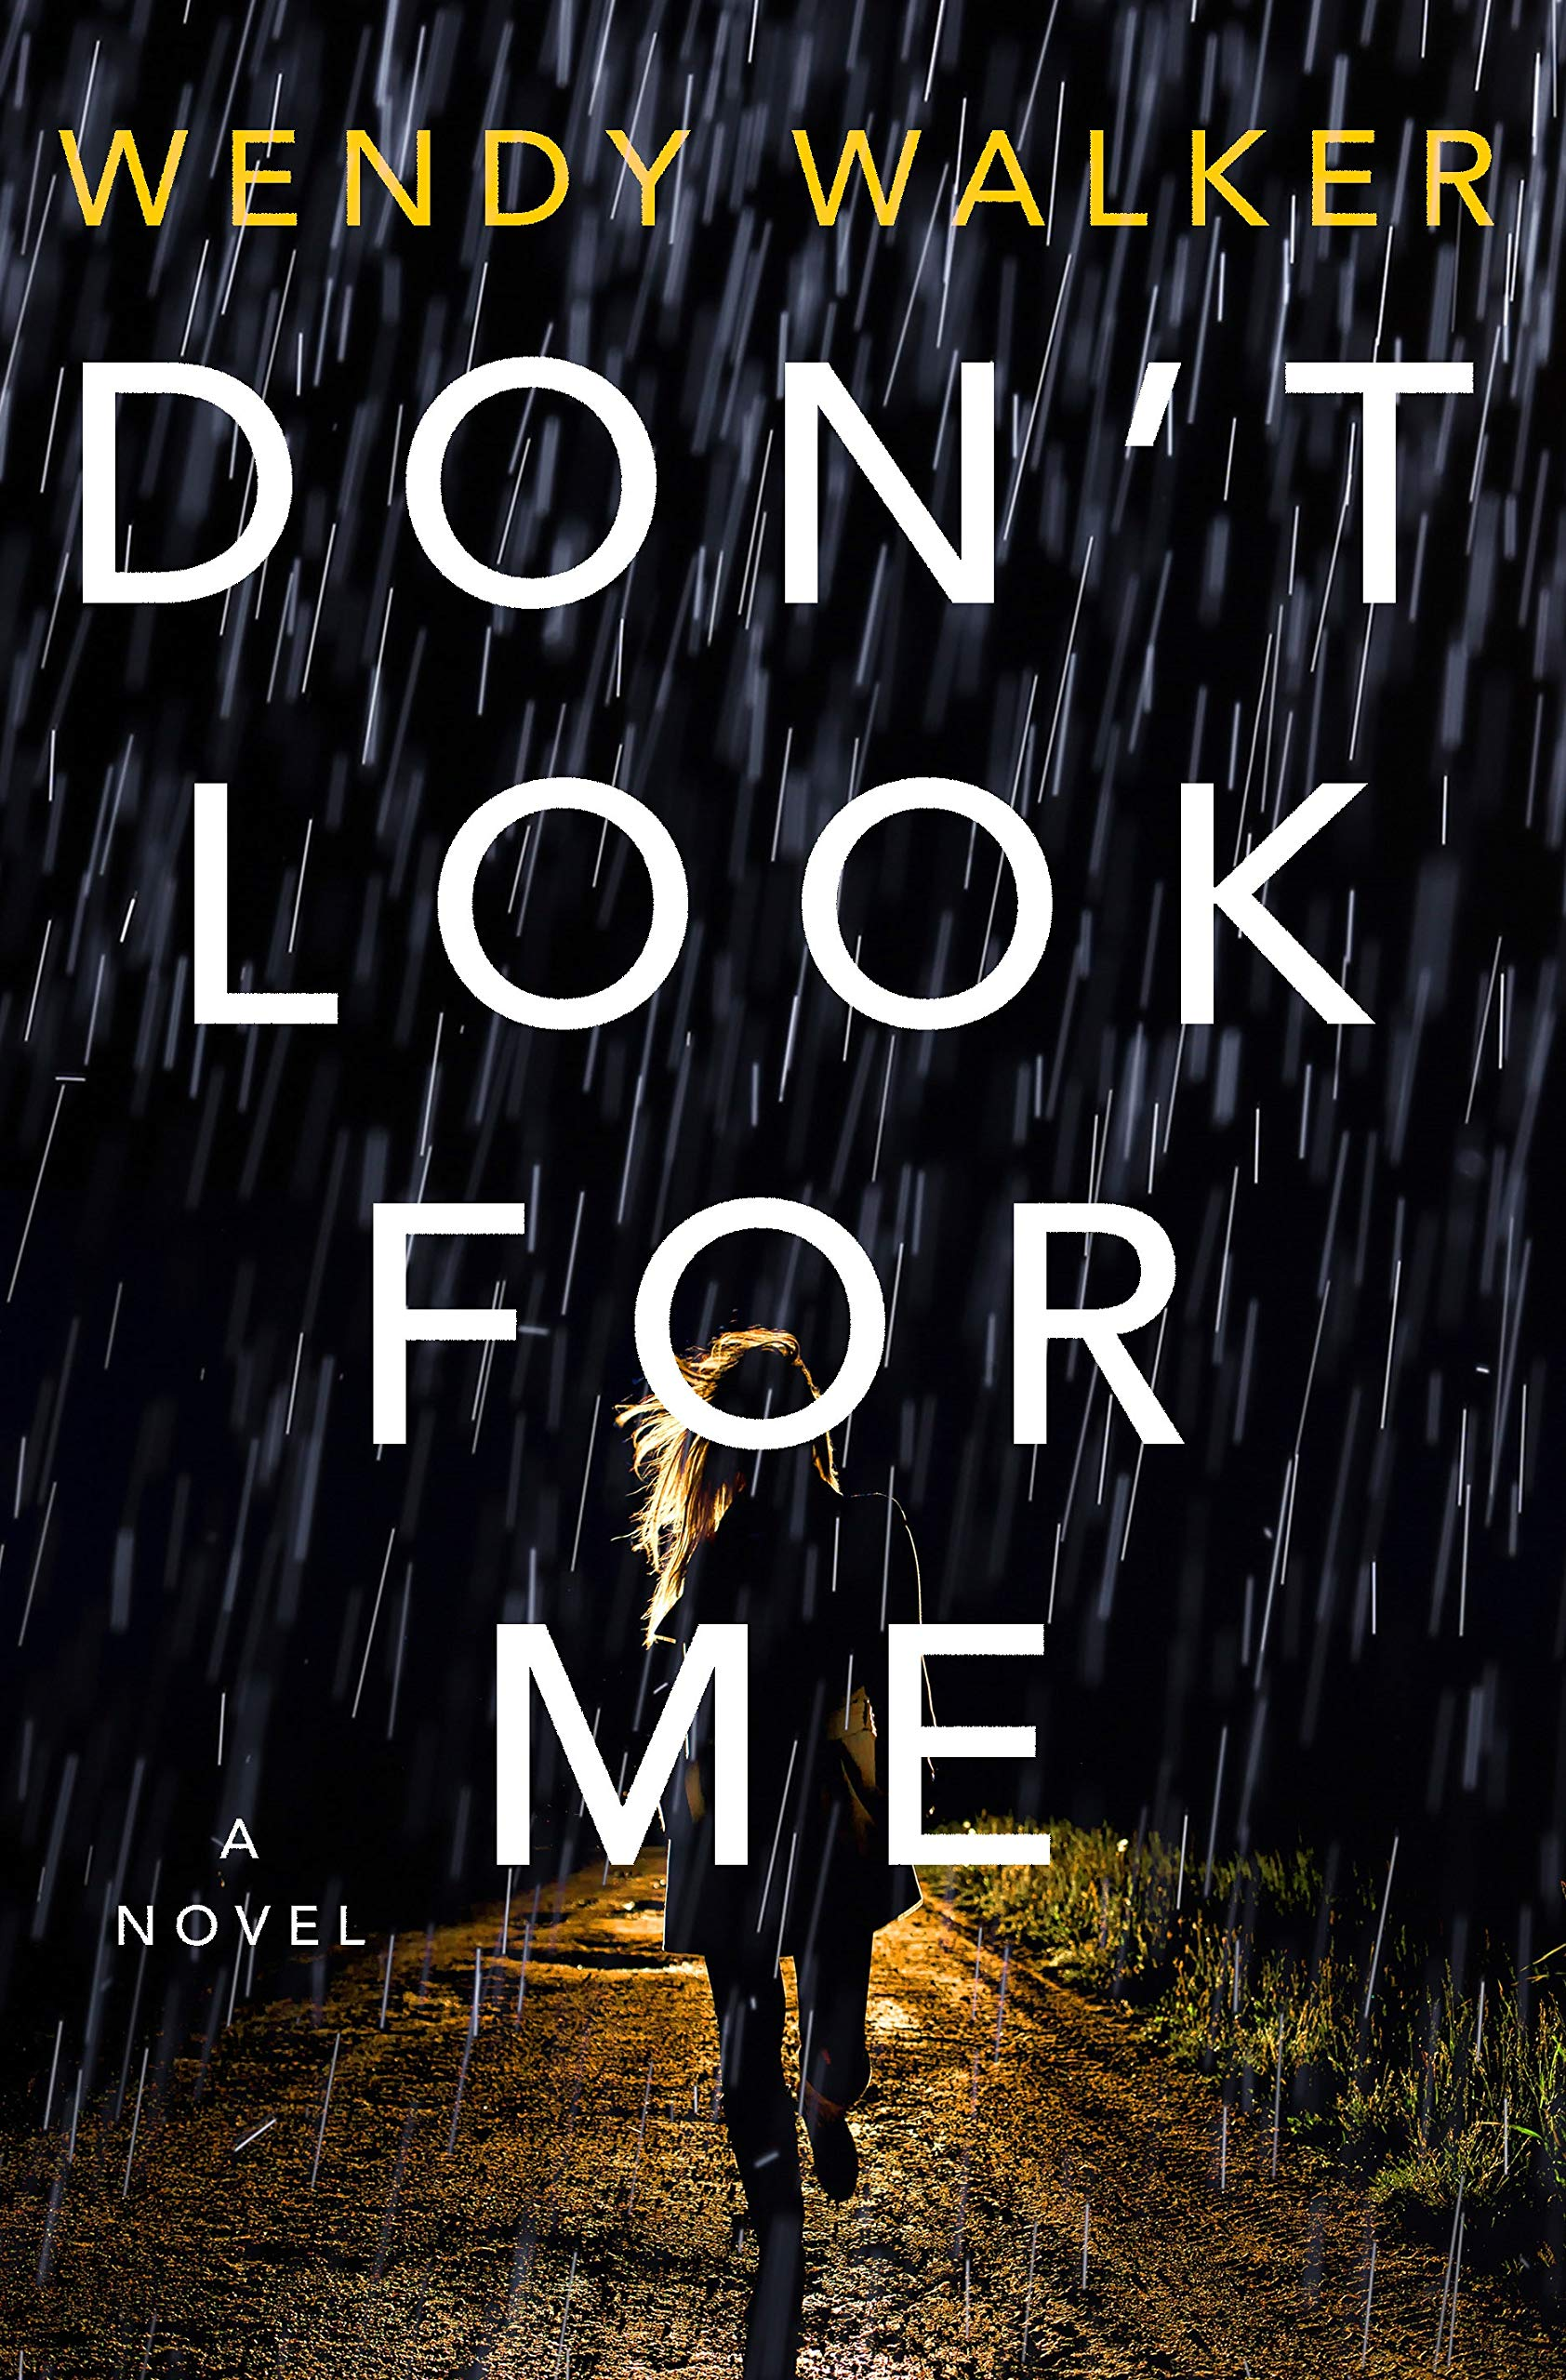 Don't Look for Me: Wendy Walker: 9781250198709: Amazon.com: Books